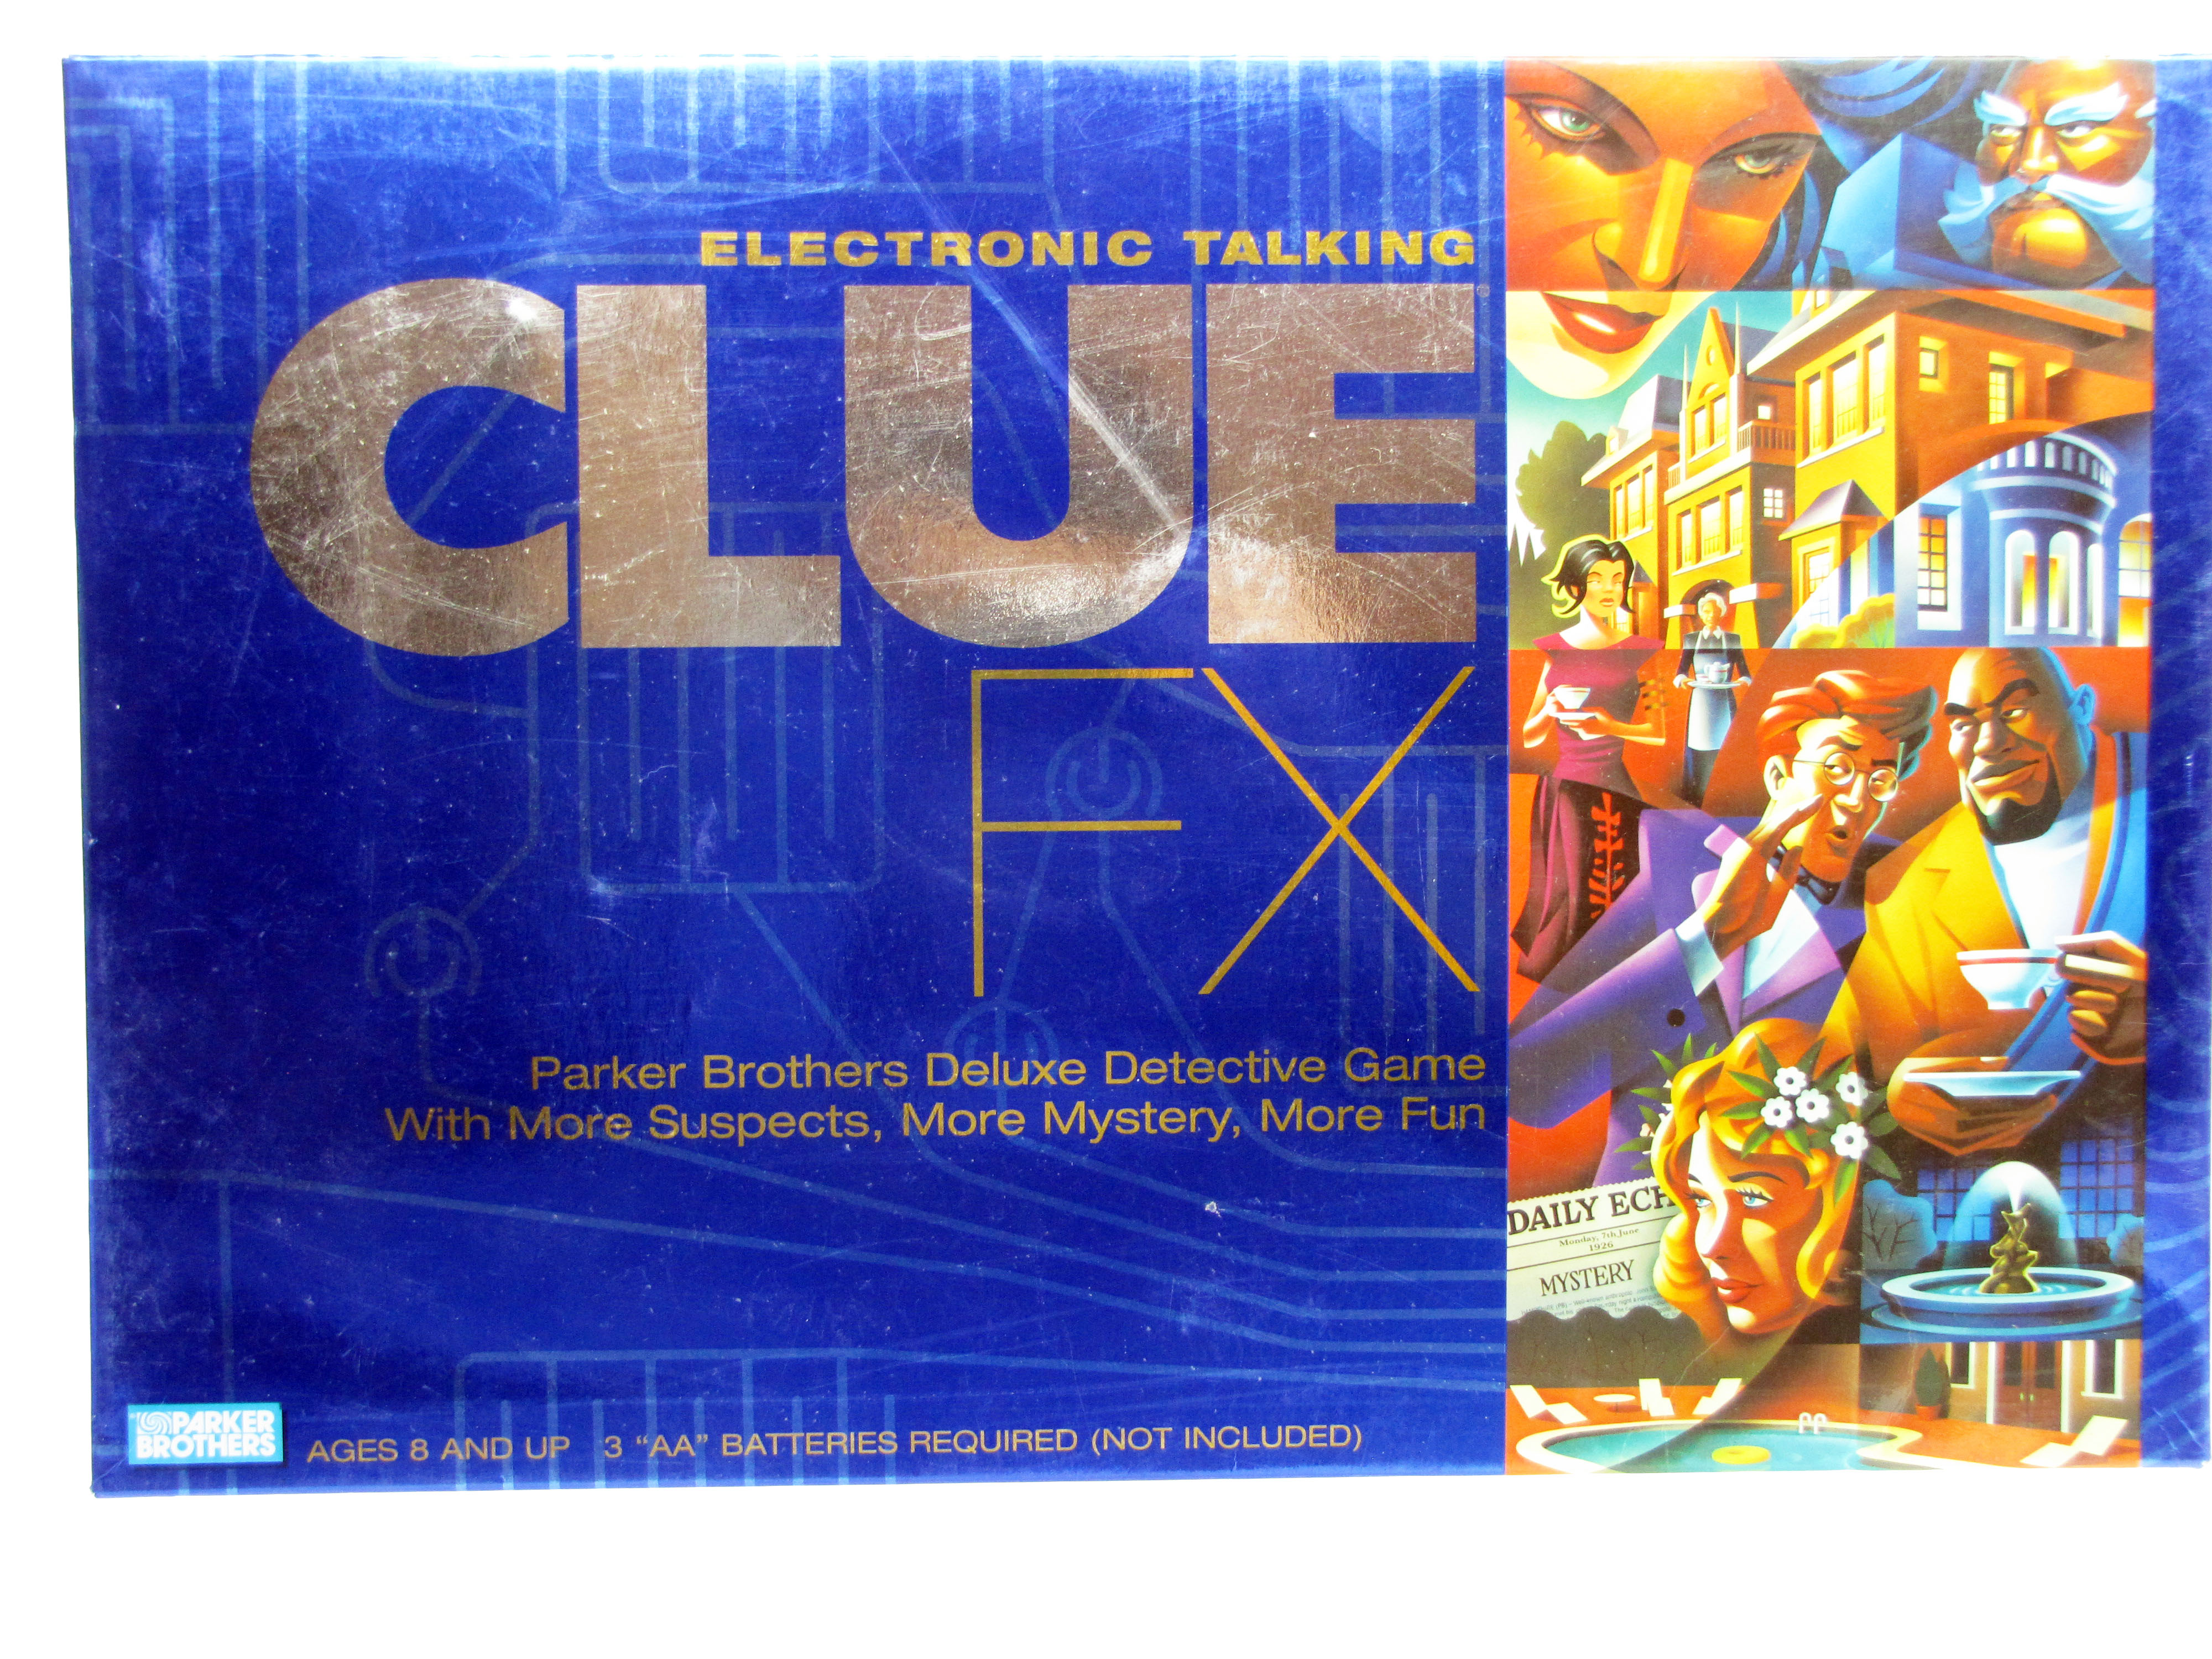 2003 Parker Brothers Clue FX Electronic Talking Game Complete